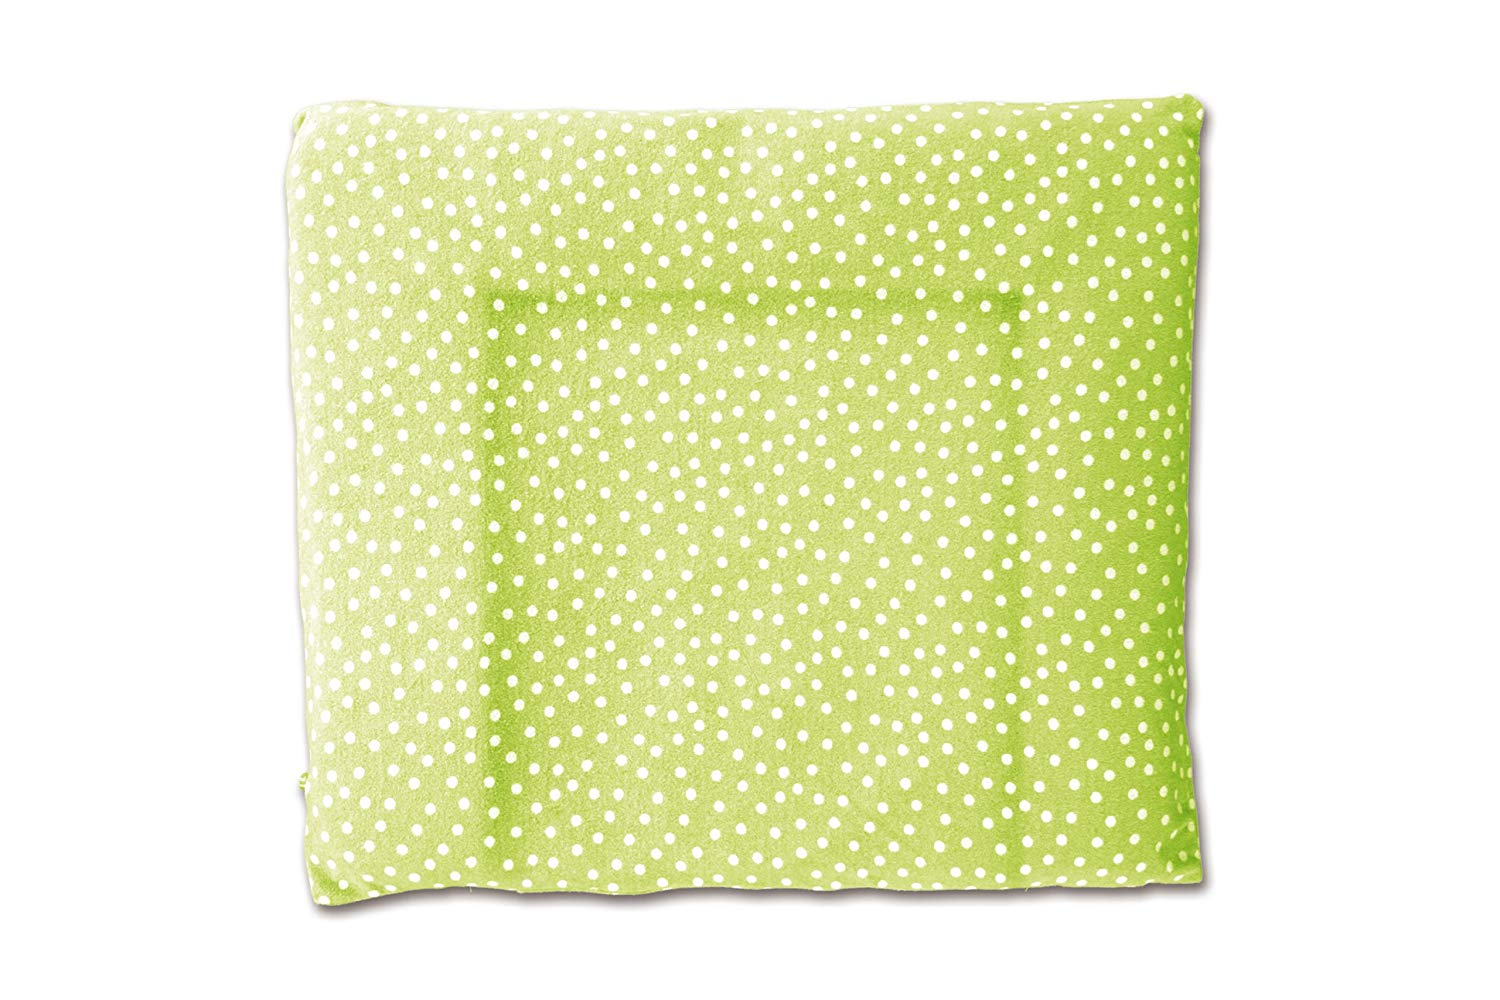 Baby Boum (75 x 85cm) Snuggly Bean Bag Cover with Spotty Design From the Youmi Scuba Collection (Lime Green)